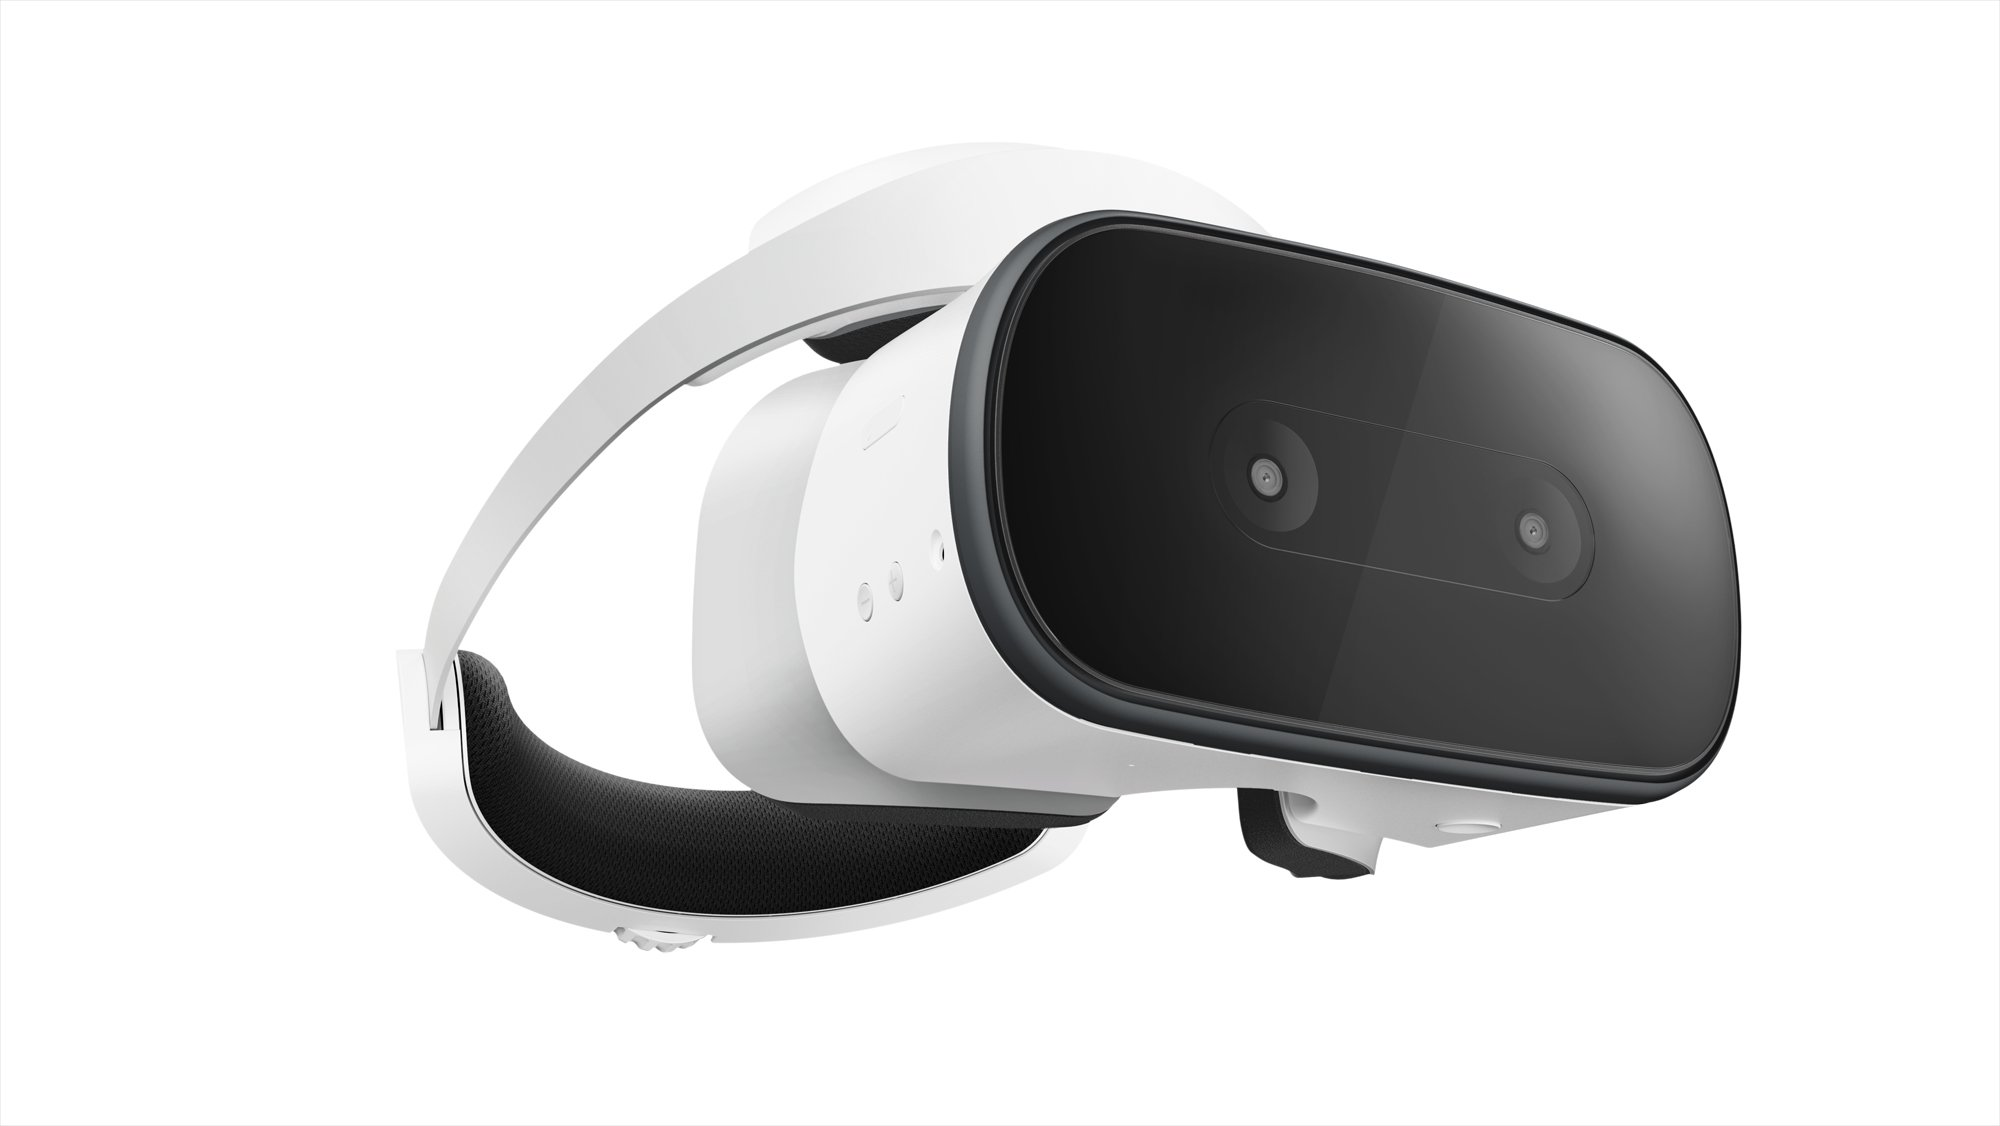 [Deal Alert] Lenovo Mirage Solo drops to $320-330 ($70-80 off), Mirage Camera down to $250 ($50 off)